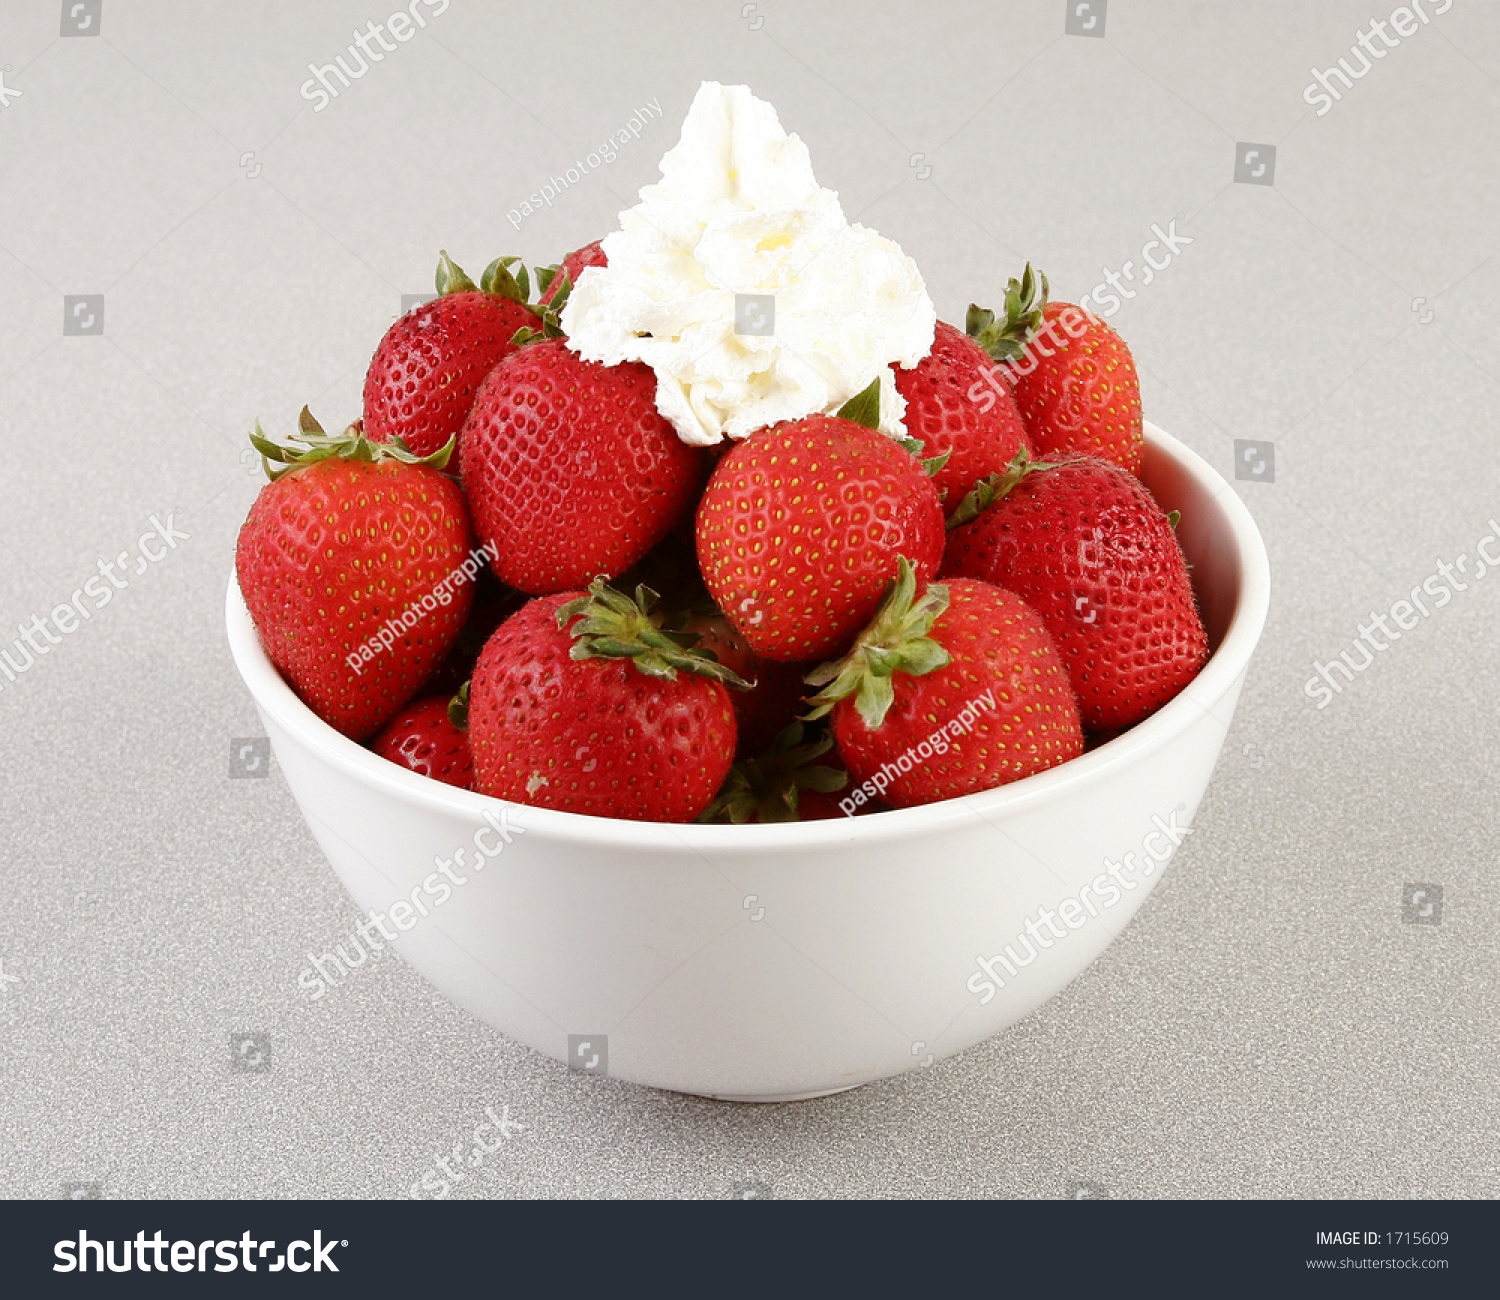 Strawberries And Whipped Cream Bowl Red Ripe Bunch Strawbe...